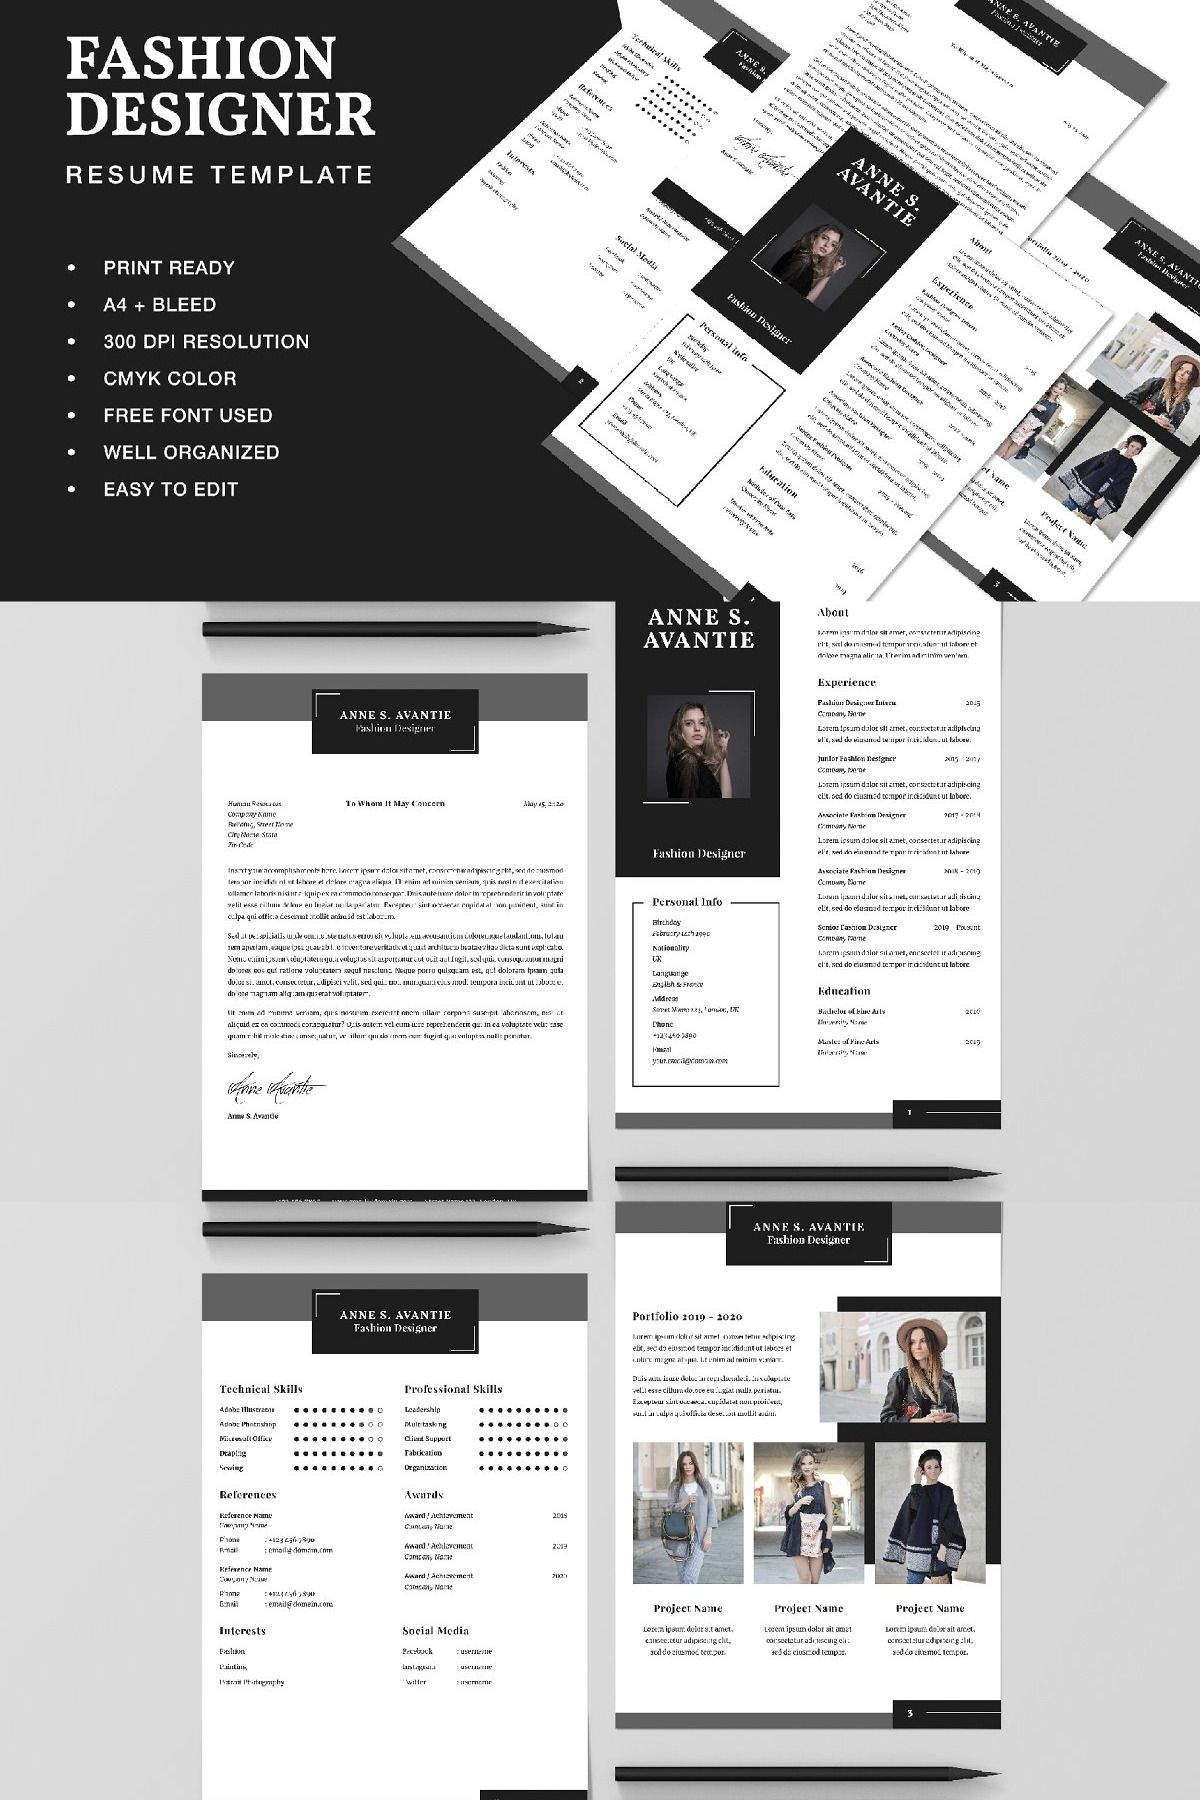 Fashion Designer Resume CV Template in 2020 Fashion